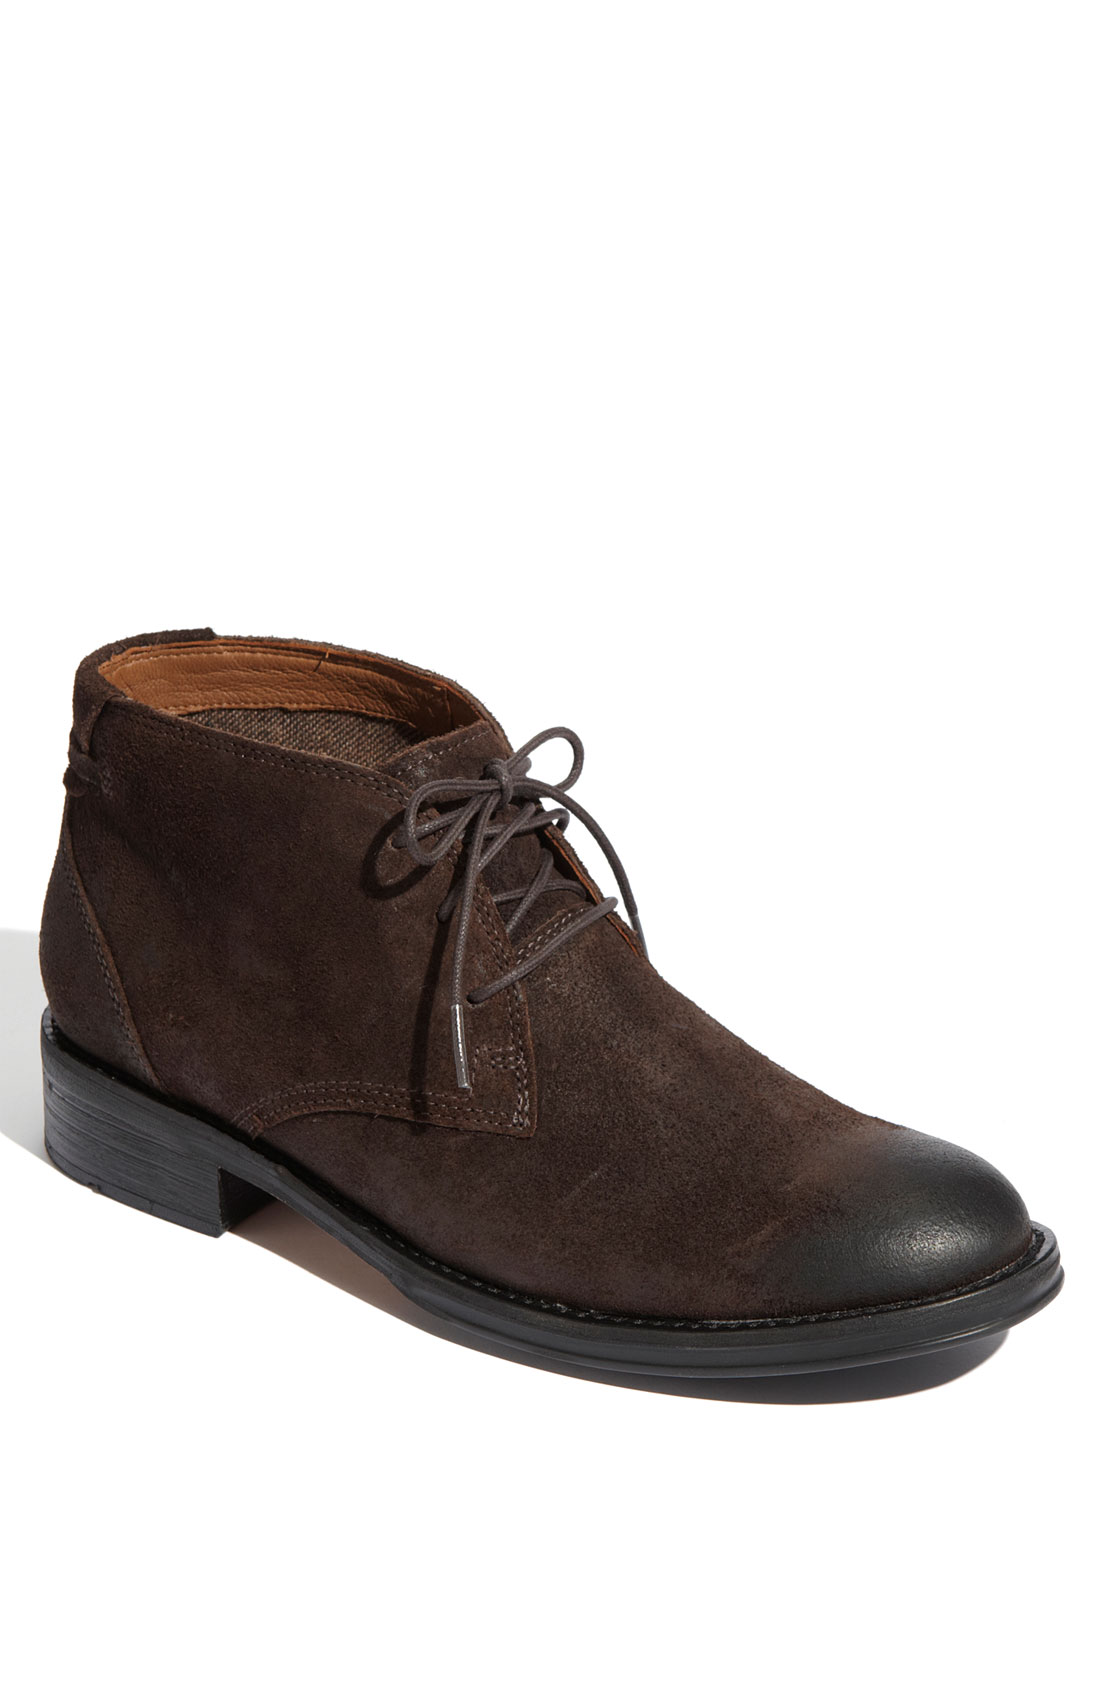 clarks maguire chukka boot in brown for brown suede